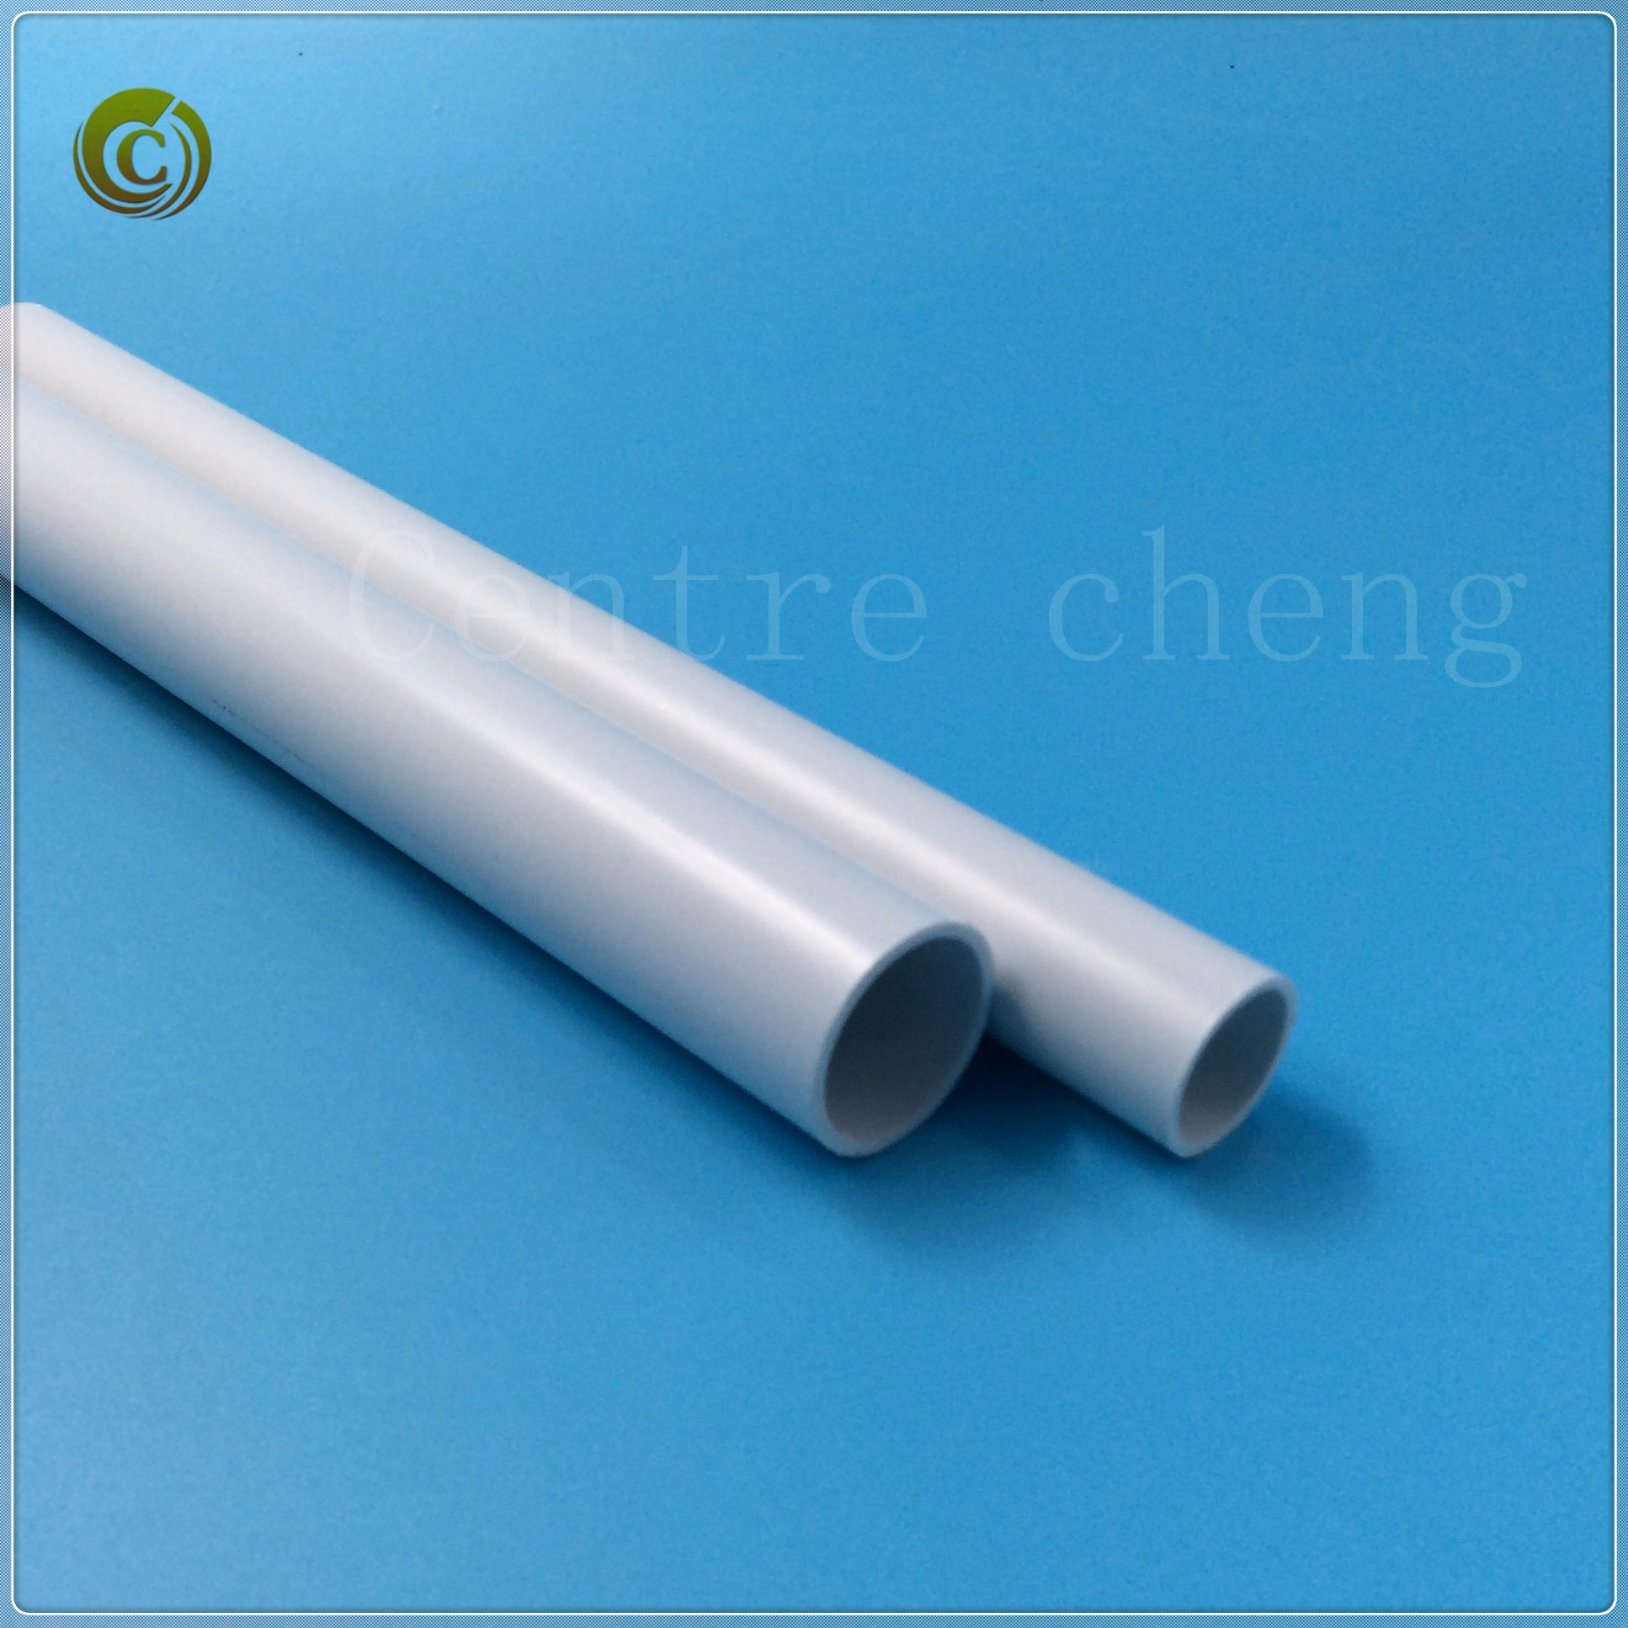 china 2018 16mmaa cable duct electric wiring conduit pipe pvc cable rh centrecheng en made in china com plastic cable conduit flexible plastic cable conduit flexible